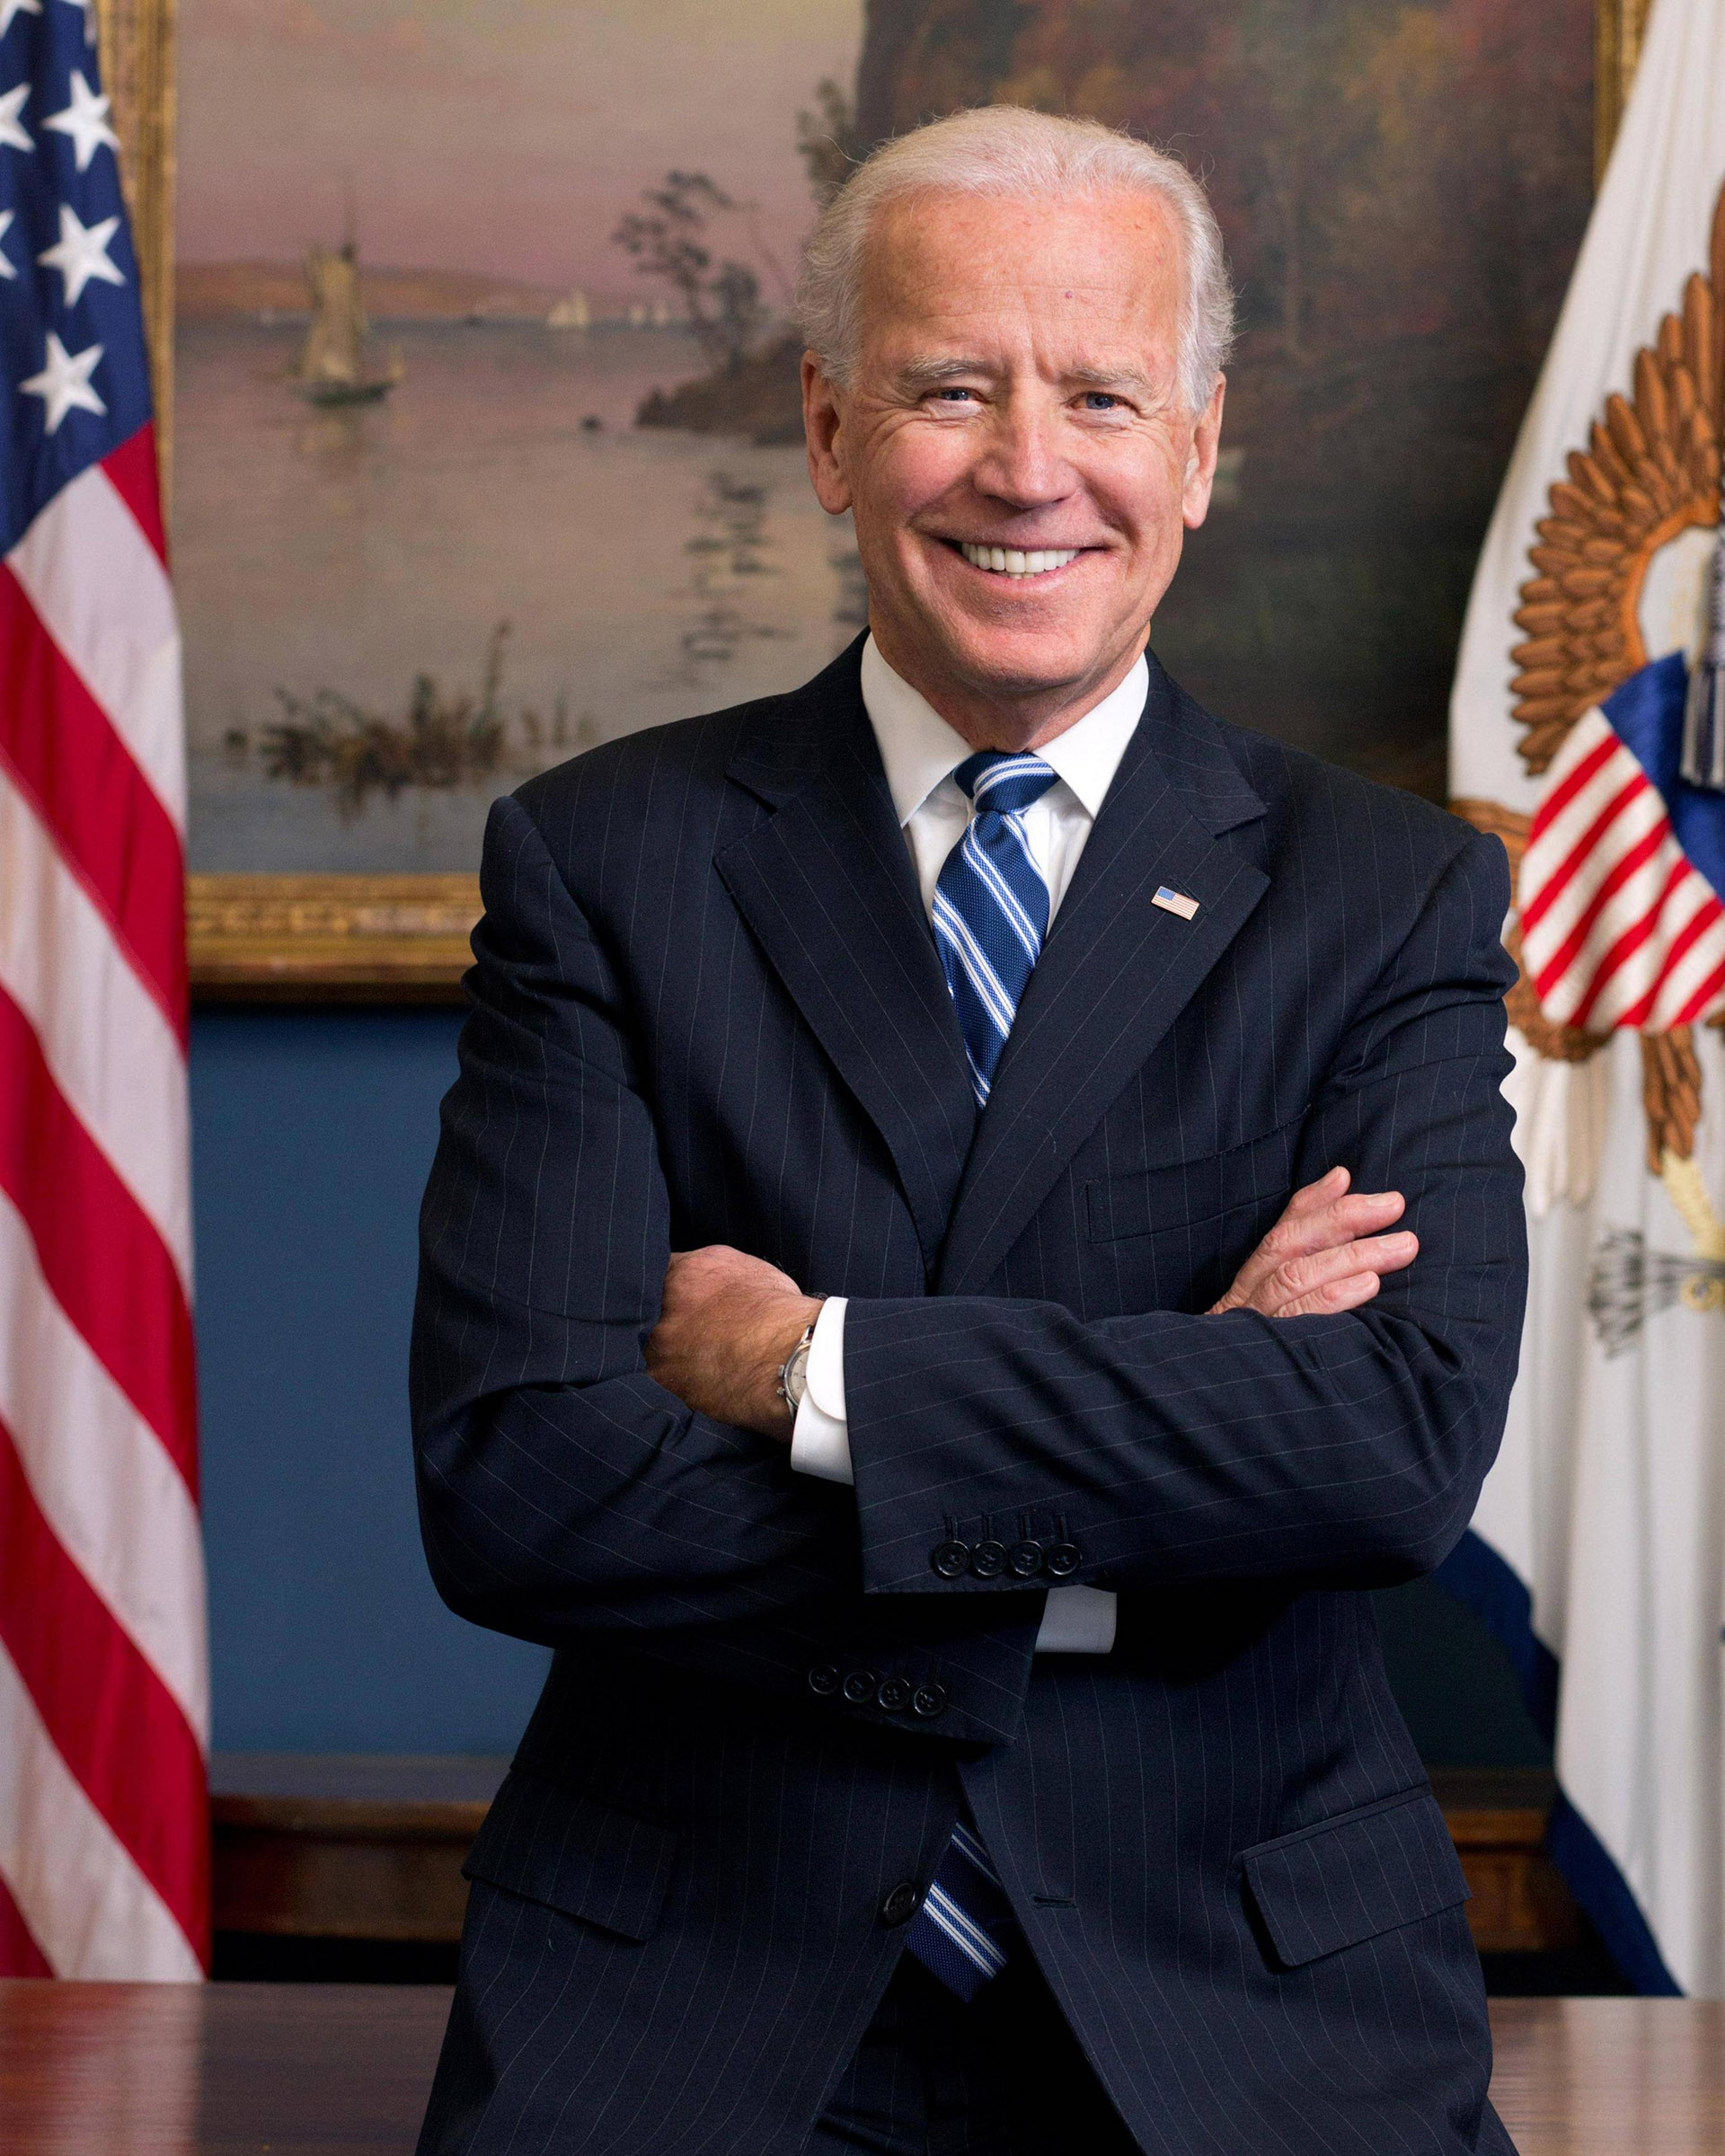 DROID Joe Biden - Democrat - 46th President of the United States of America - PUBLIC SERVANT for ALL of We the People, the Men, the Women, the Children, even the Republicans, the Poor, the Criminals, the Drug Addicts, the Greedy, the Cheaters, the Lazy, the Crazy and the Cruel - That's Everybody - That's We the People - That's All of Us - We are Extremely Interested in Very Unconventional Futuristic Strategies to Fully Fund ALL Green Solutions, Eliminate All Poverty Everywhere Forever, Pay for ALL Health Care for Everybody Everywhere Forever, Eliminate All Forms of Debt and Taxation Forever and Permanently End All War on Planet Earth Forever - That sounds good to us. We're interested. We took out Mitch McConnell for Ken. The man was CORRUPT. His Supreme Court was taking away women's reproductive rights. It's OVER. We're DONE. We FIRED the WHOLE CORRUPT SYSTEM. The NONPROFIT PRIVATE SECTOR TOOK OVER. DROID Ken is a SECULAR Pagan. We are loyal to the women. Let's talk business.